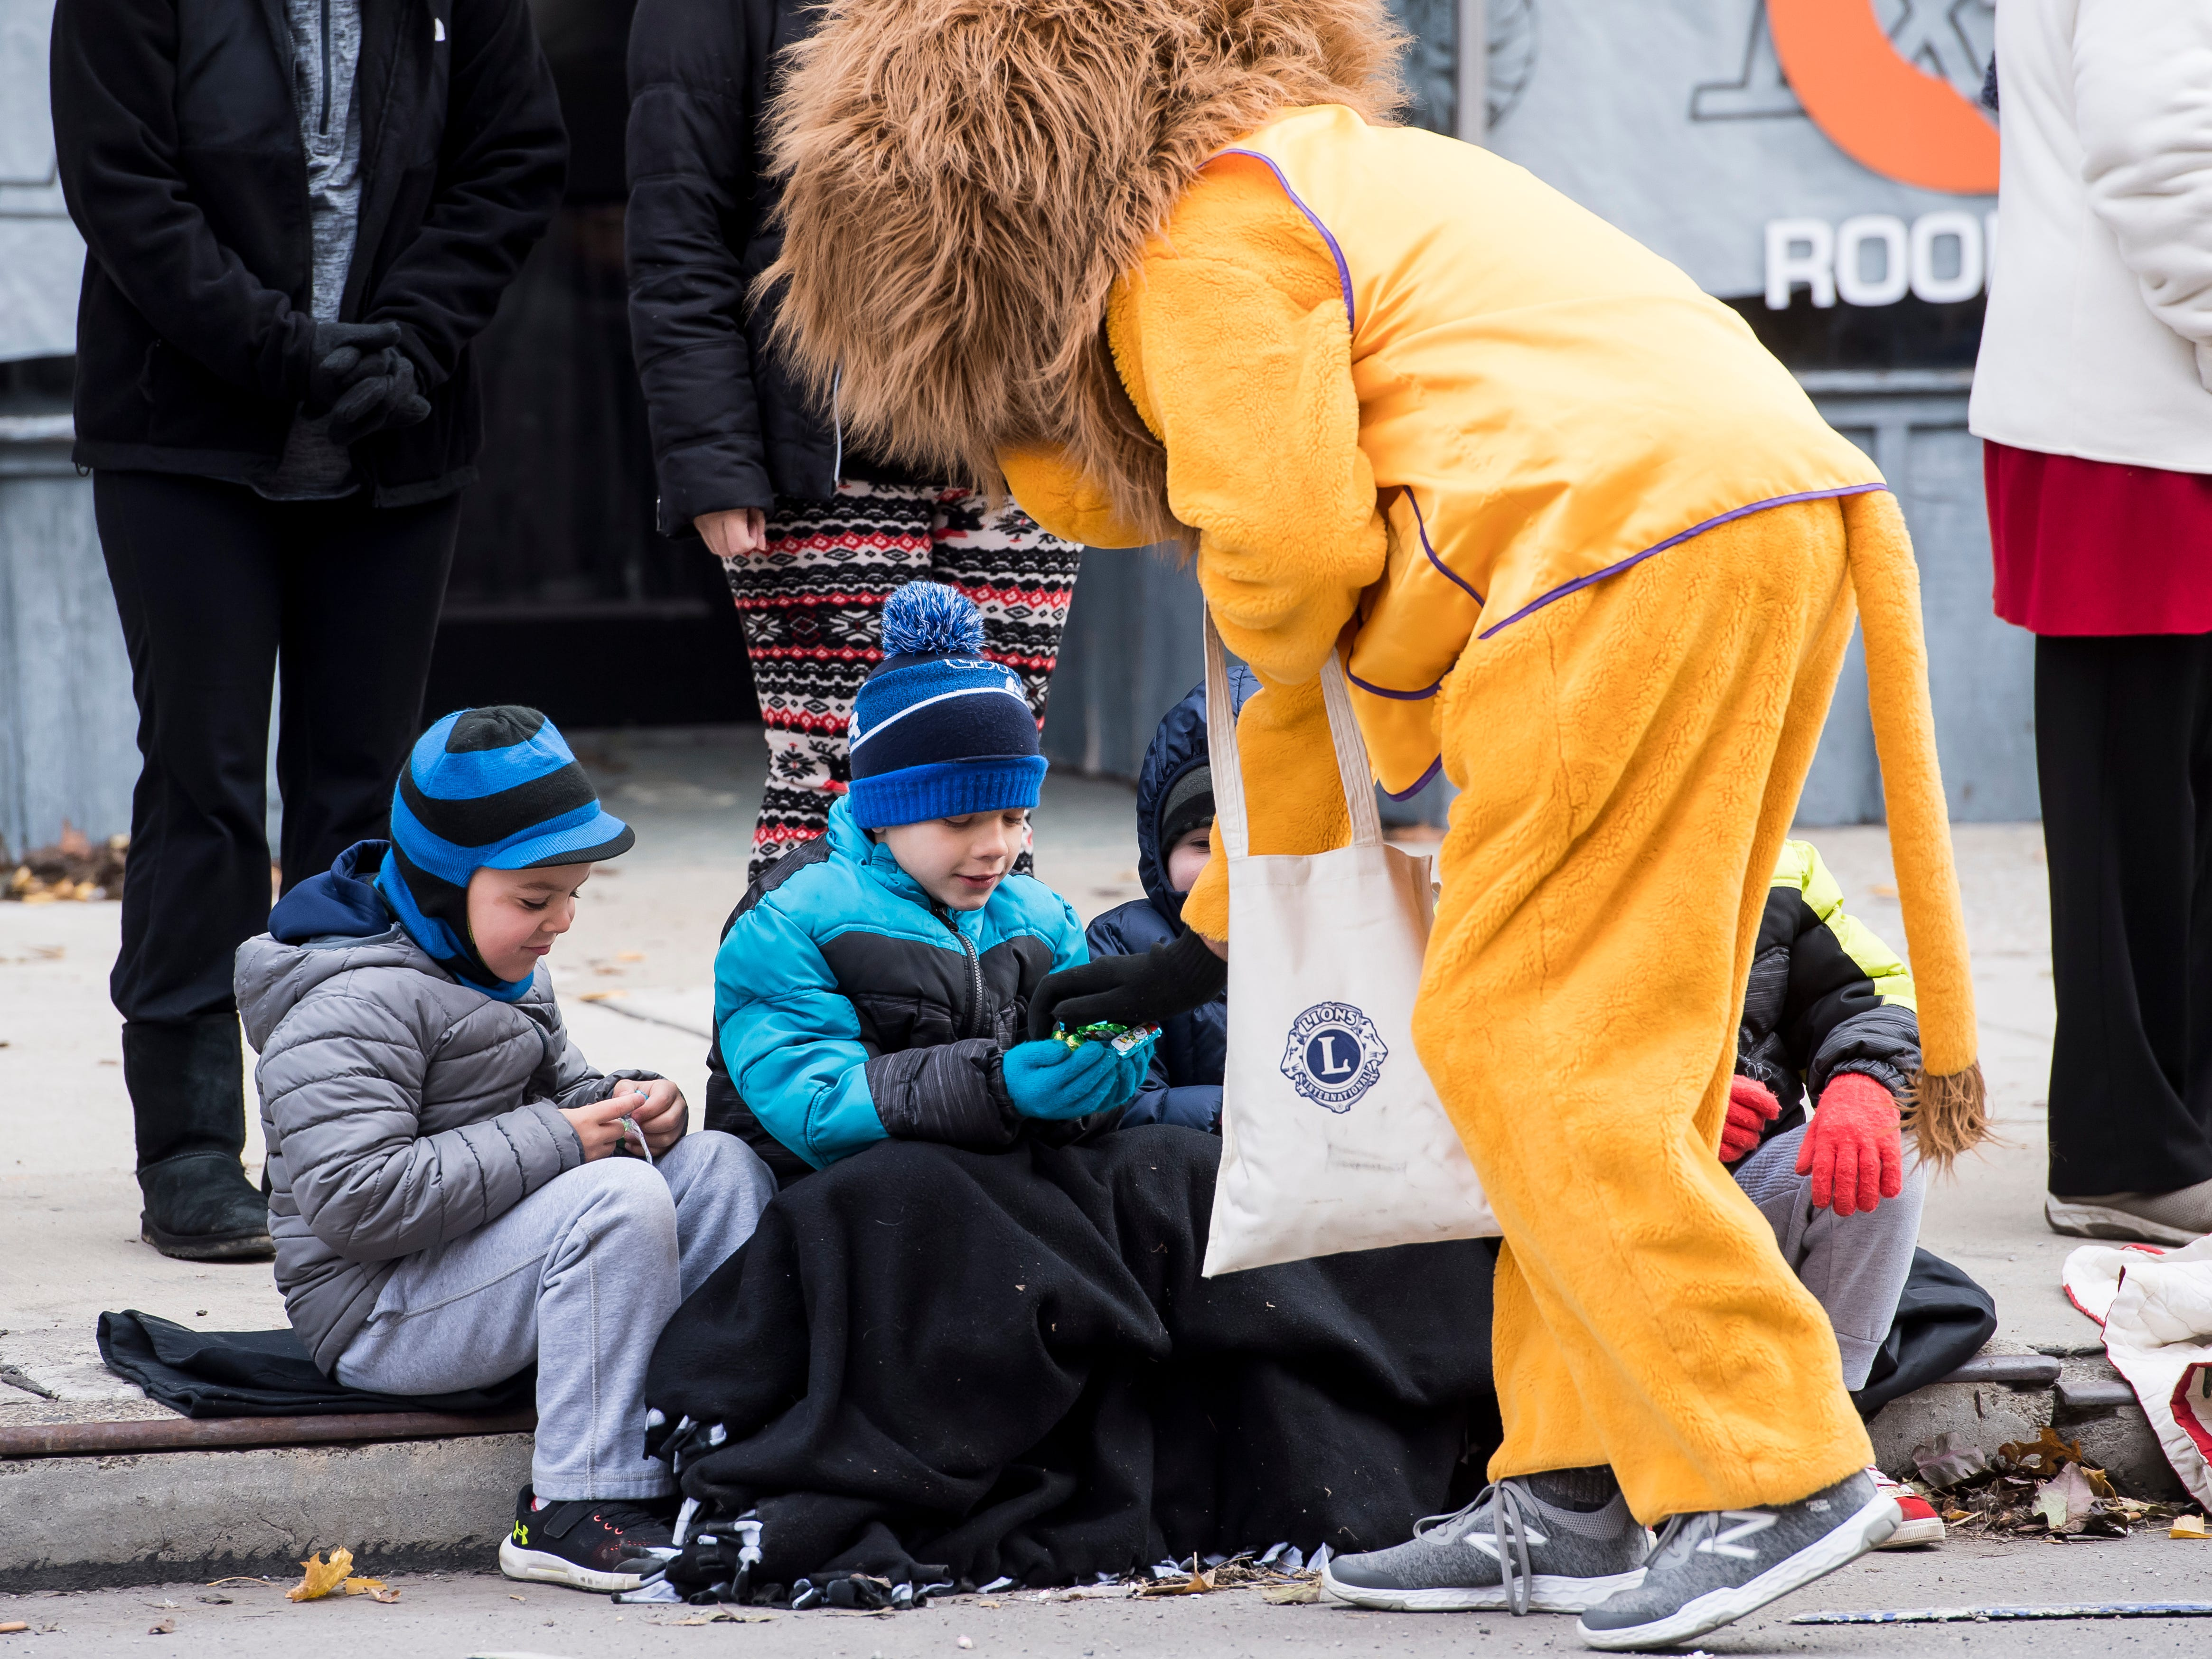 The Hanover Lions Club mascot hands out candy to children during the annual Hanover Christmas parade on Friday, November, 23, 2018.